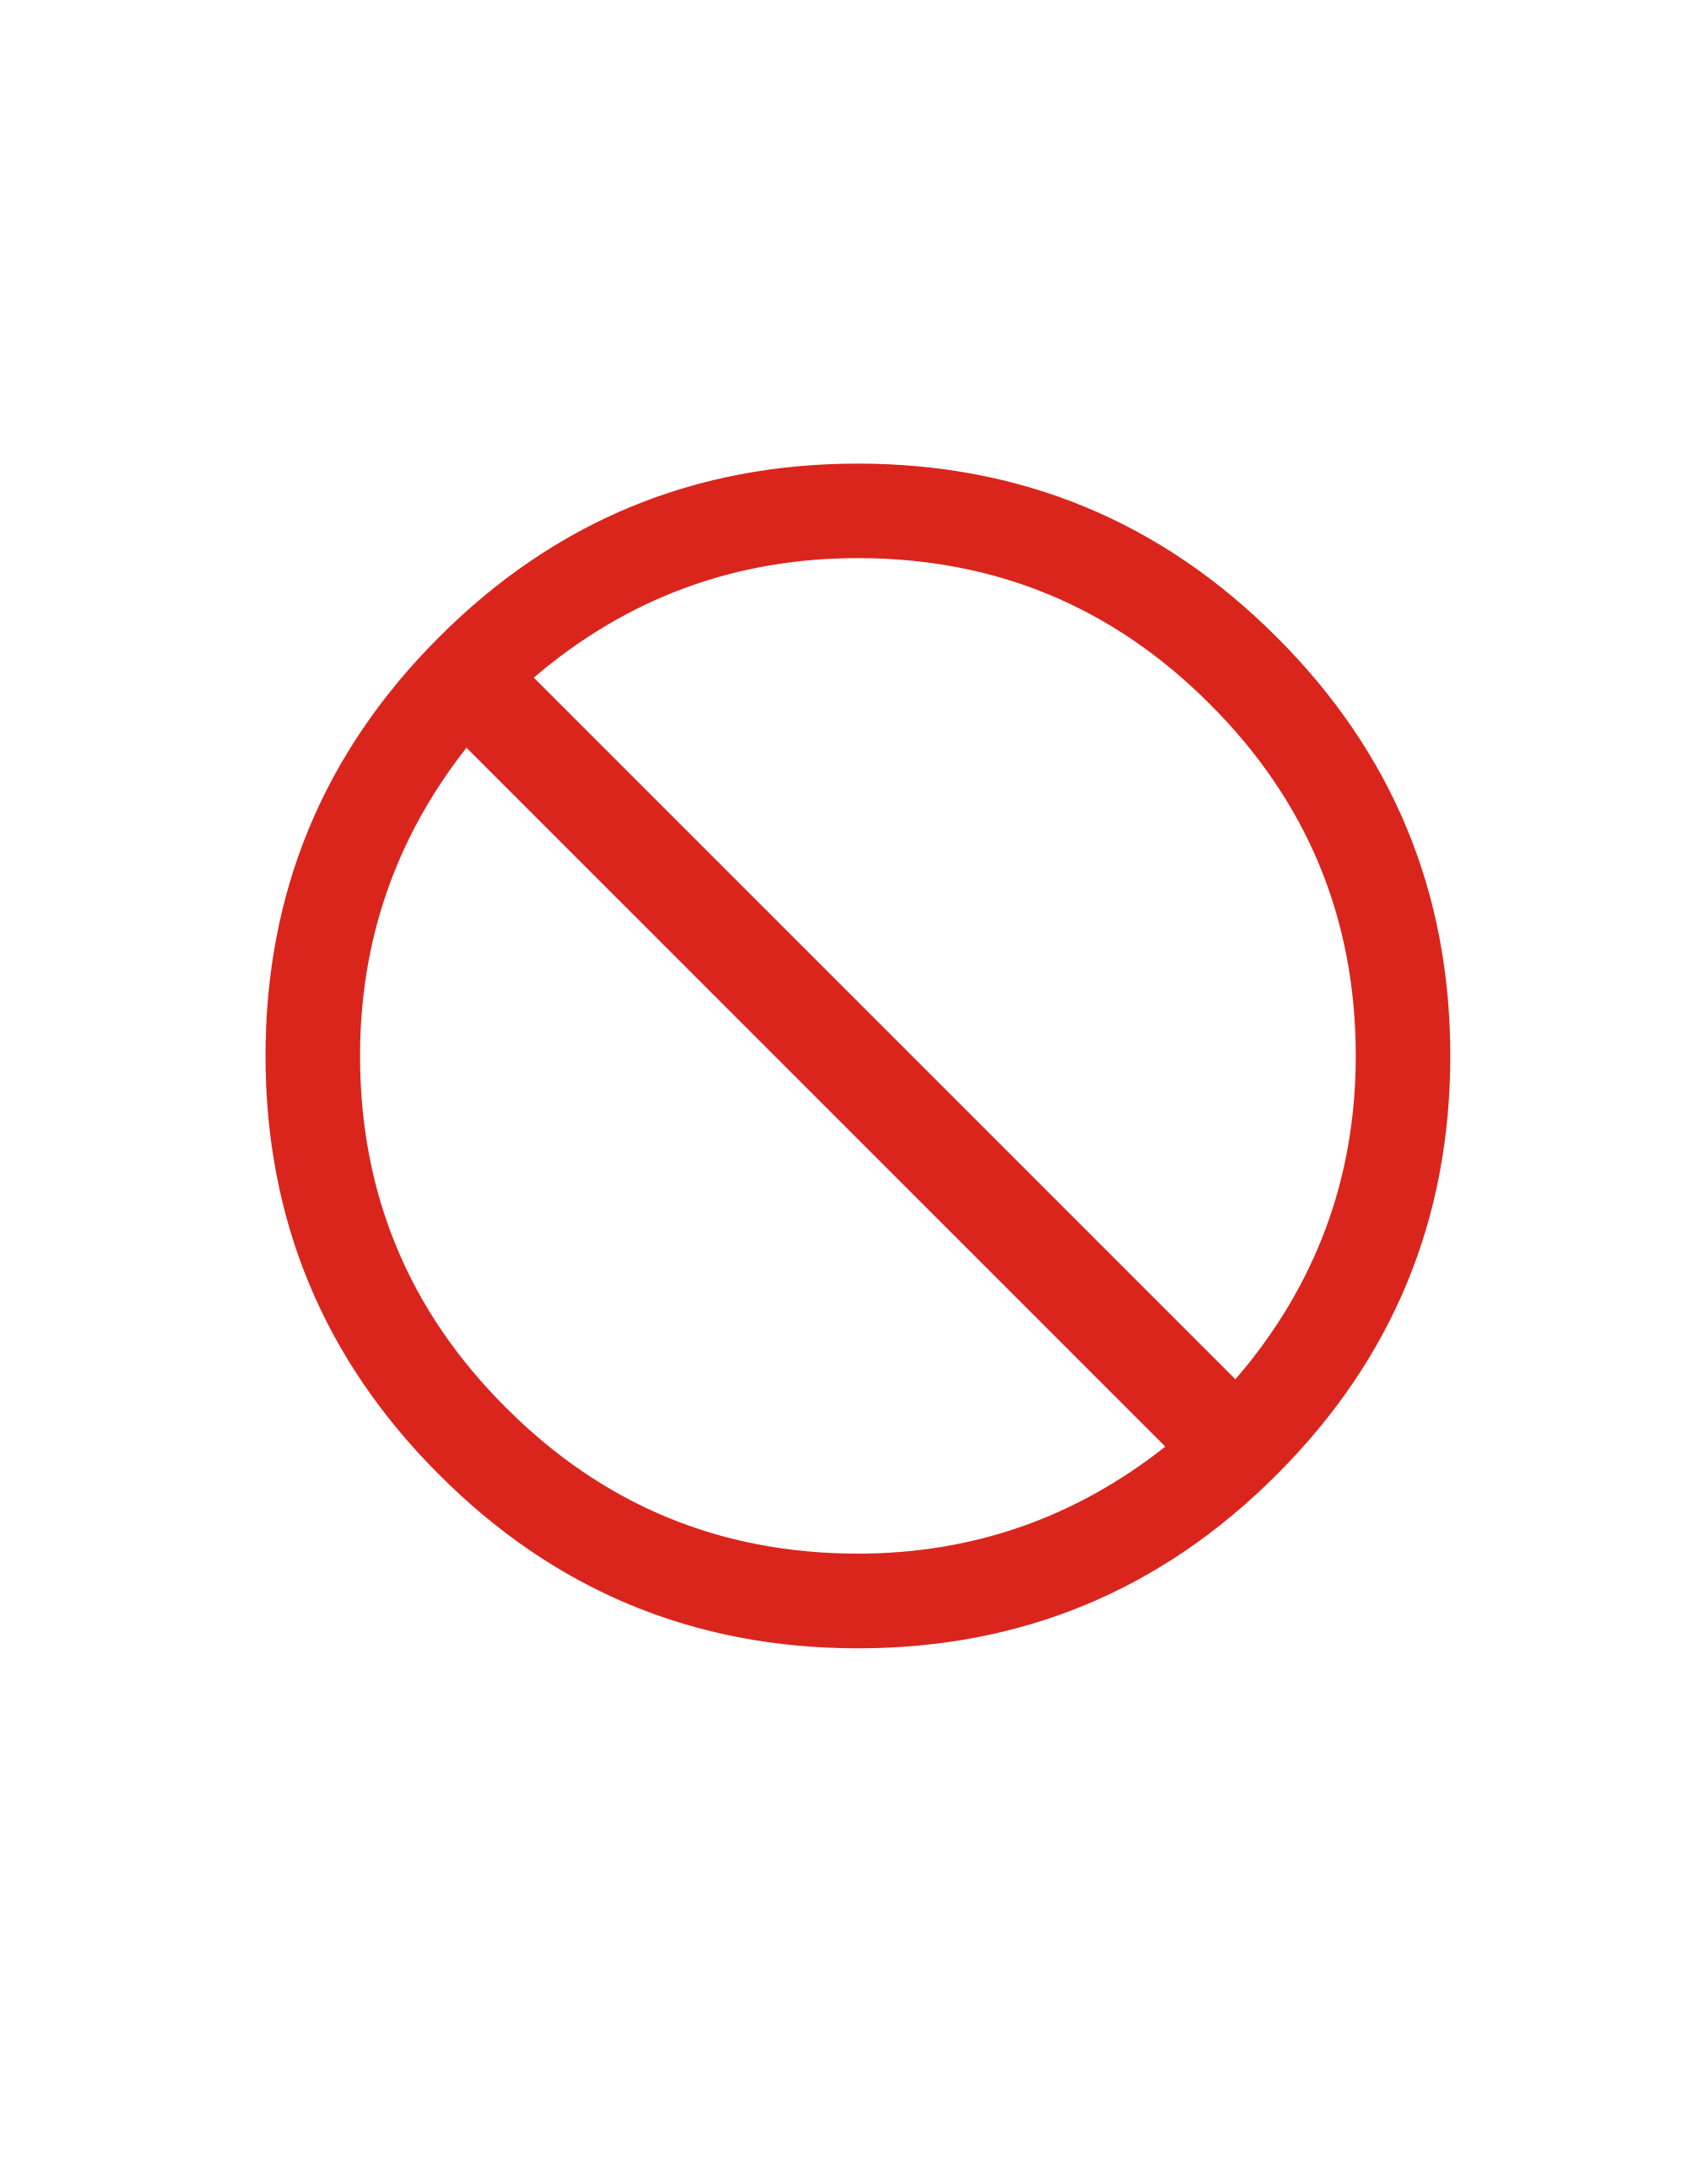 Prohibited Sign Png 2